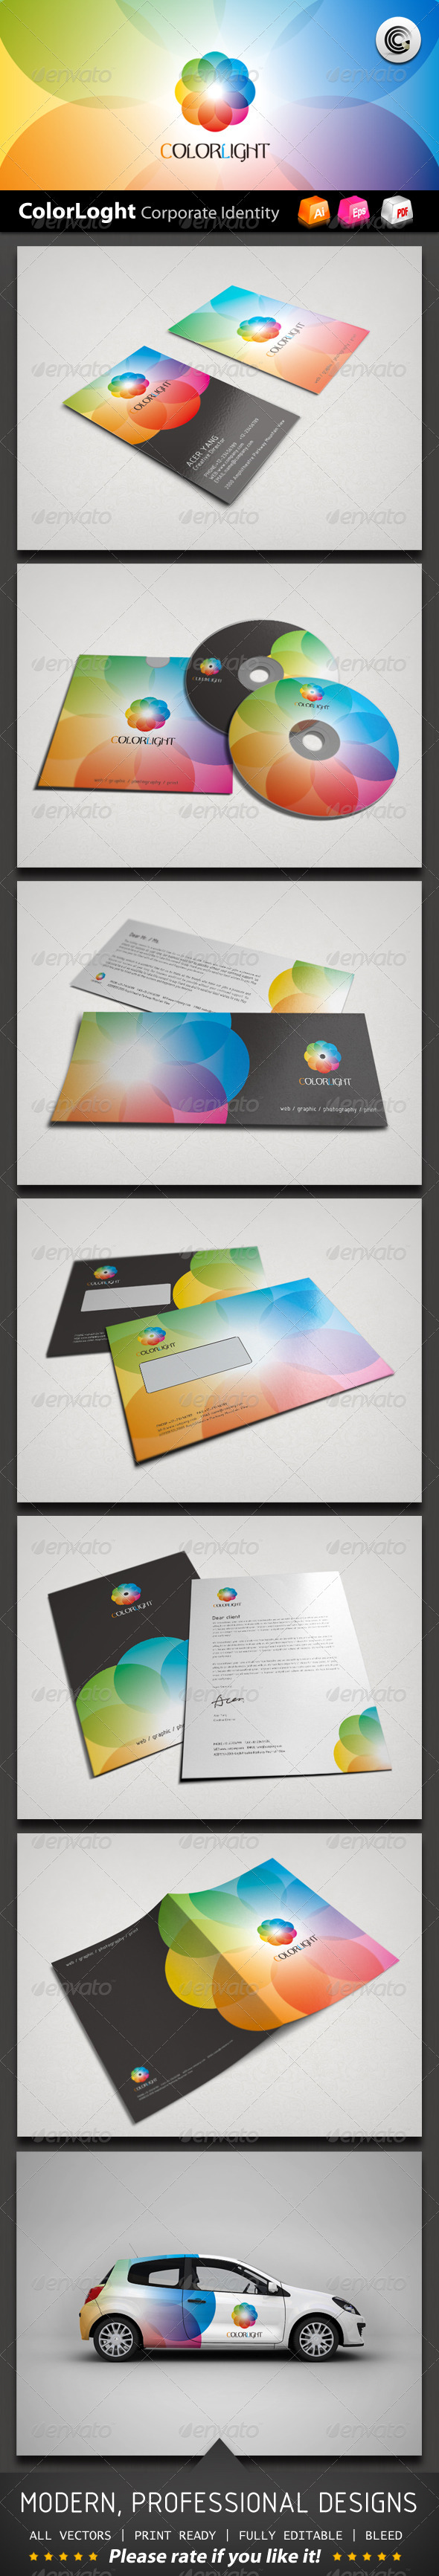 Color Light Corporate Identity - Stationery Print Templates